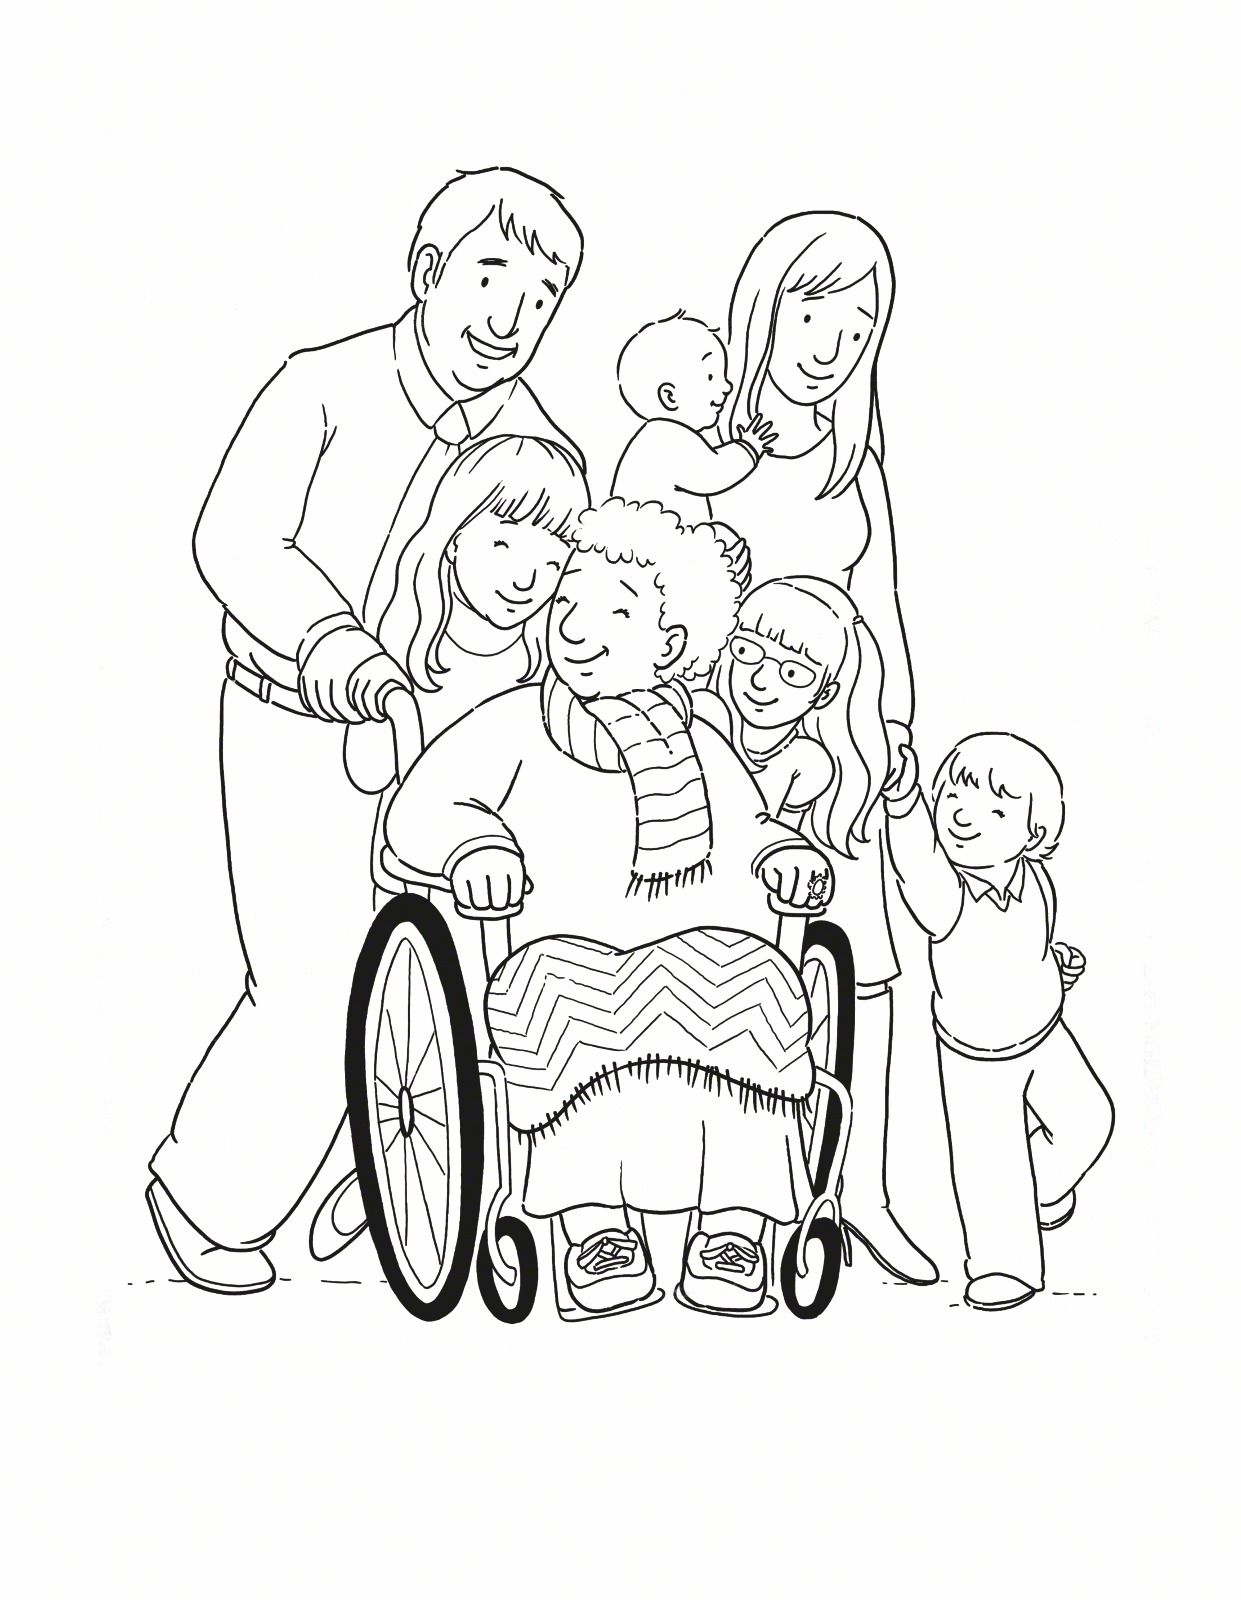 Family Grandmother Primary LDS Coloring Source: http://www